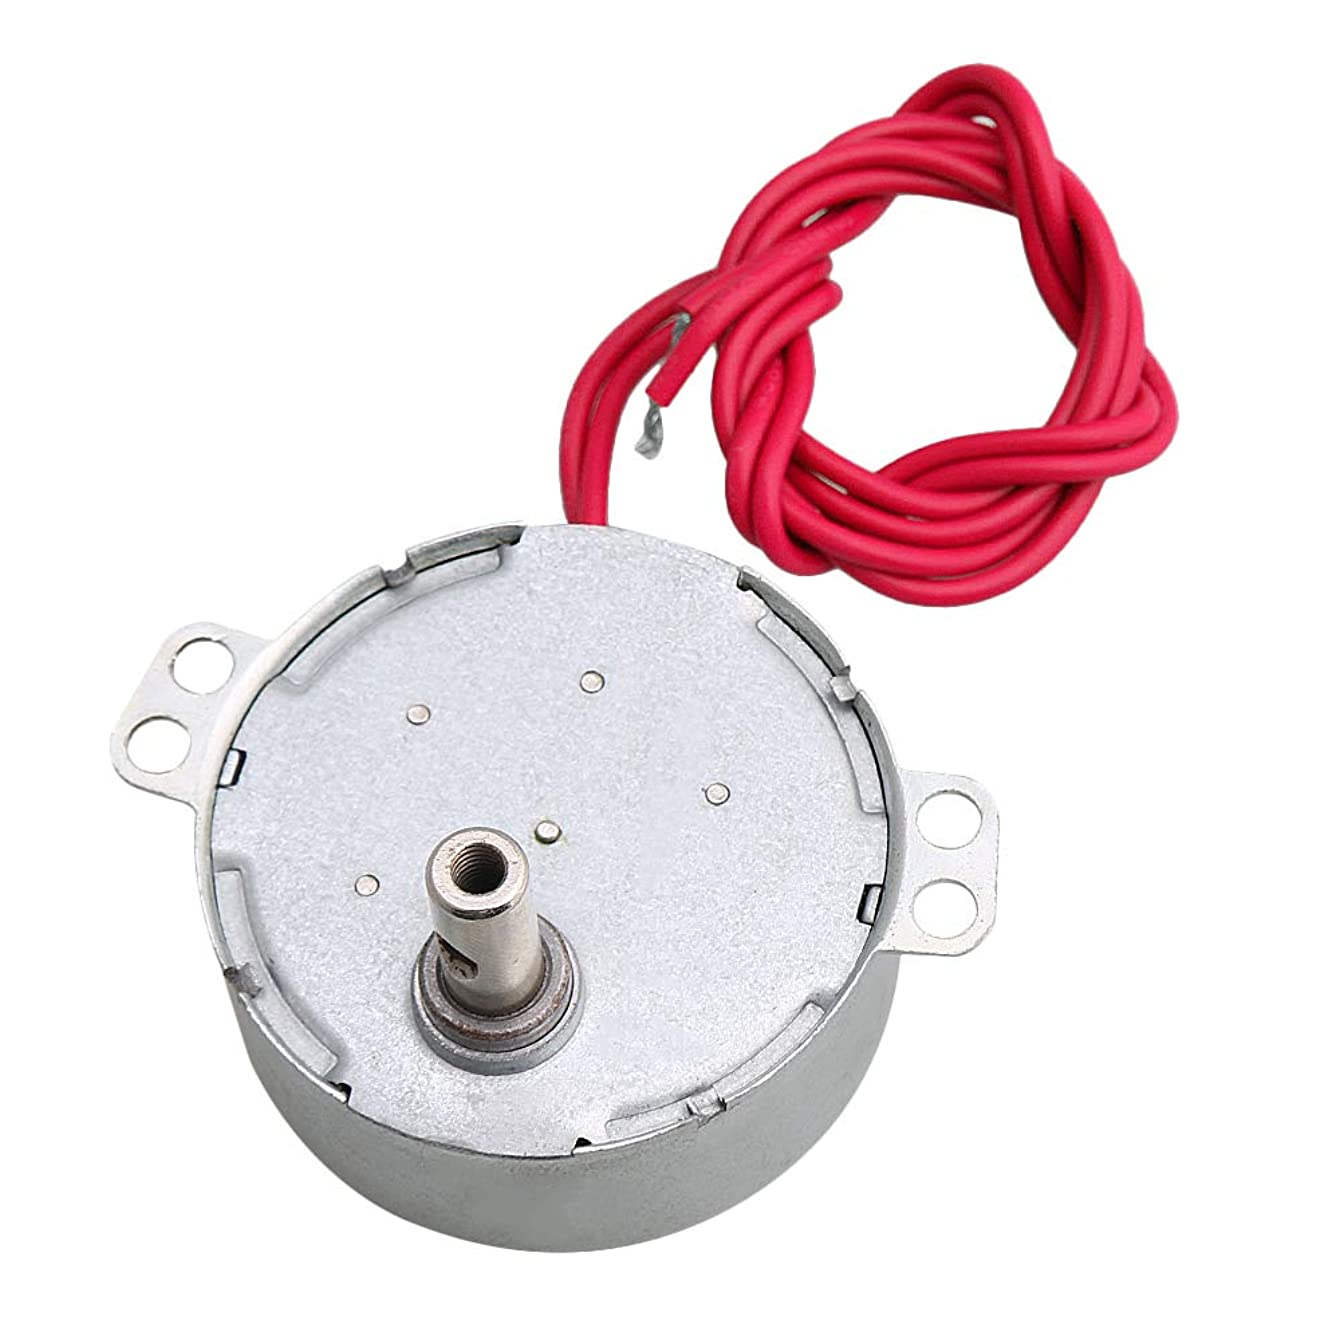 Yibuy DIY Turntable Synchronous Motor for Fan Air Conditioner AC 12V 8-10RPM